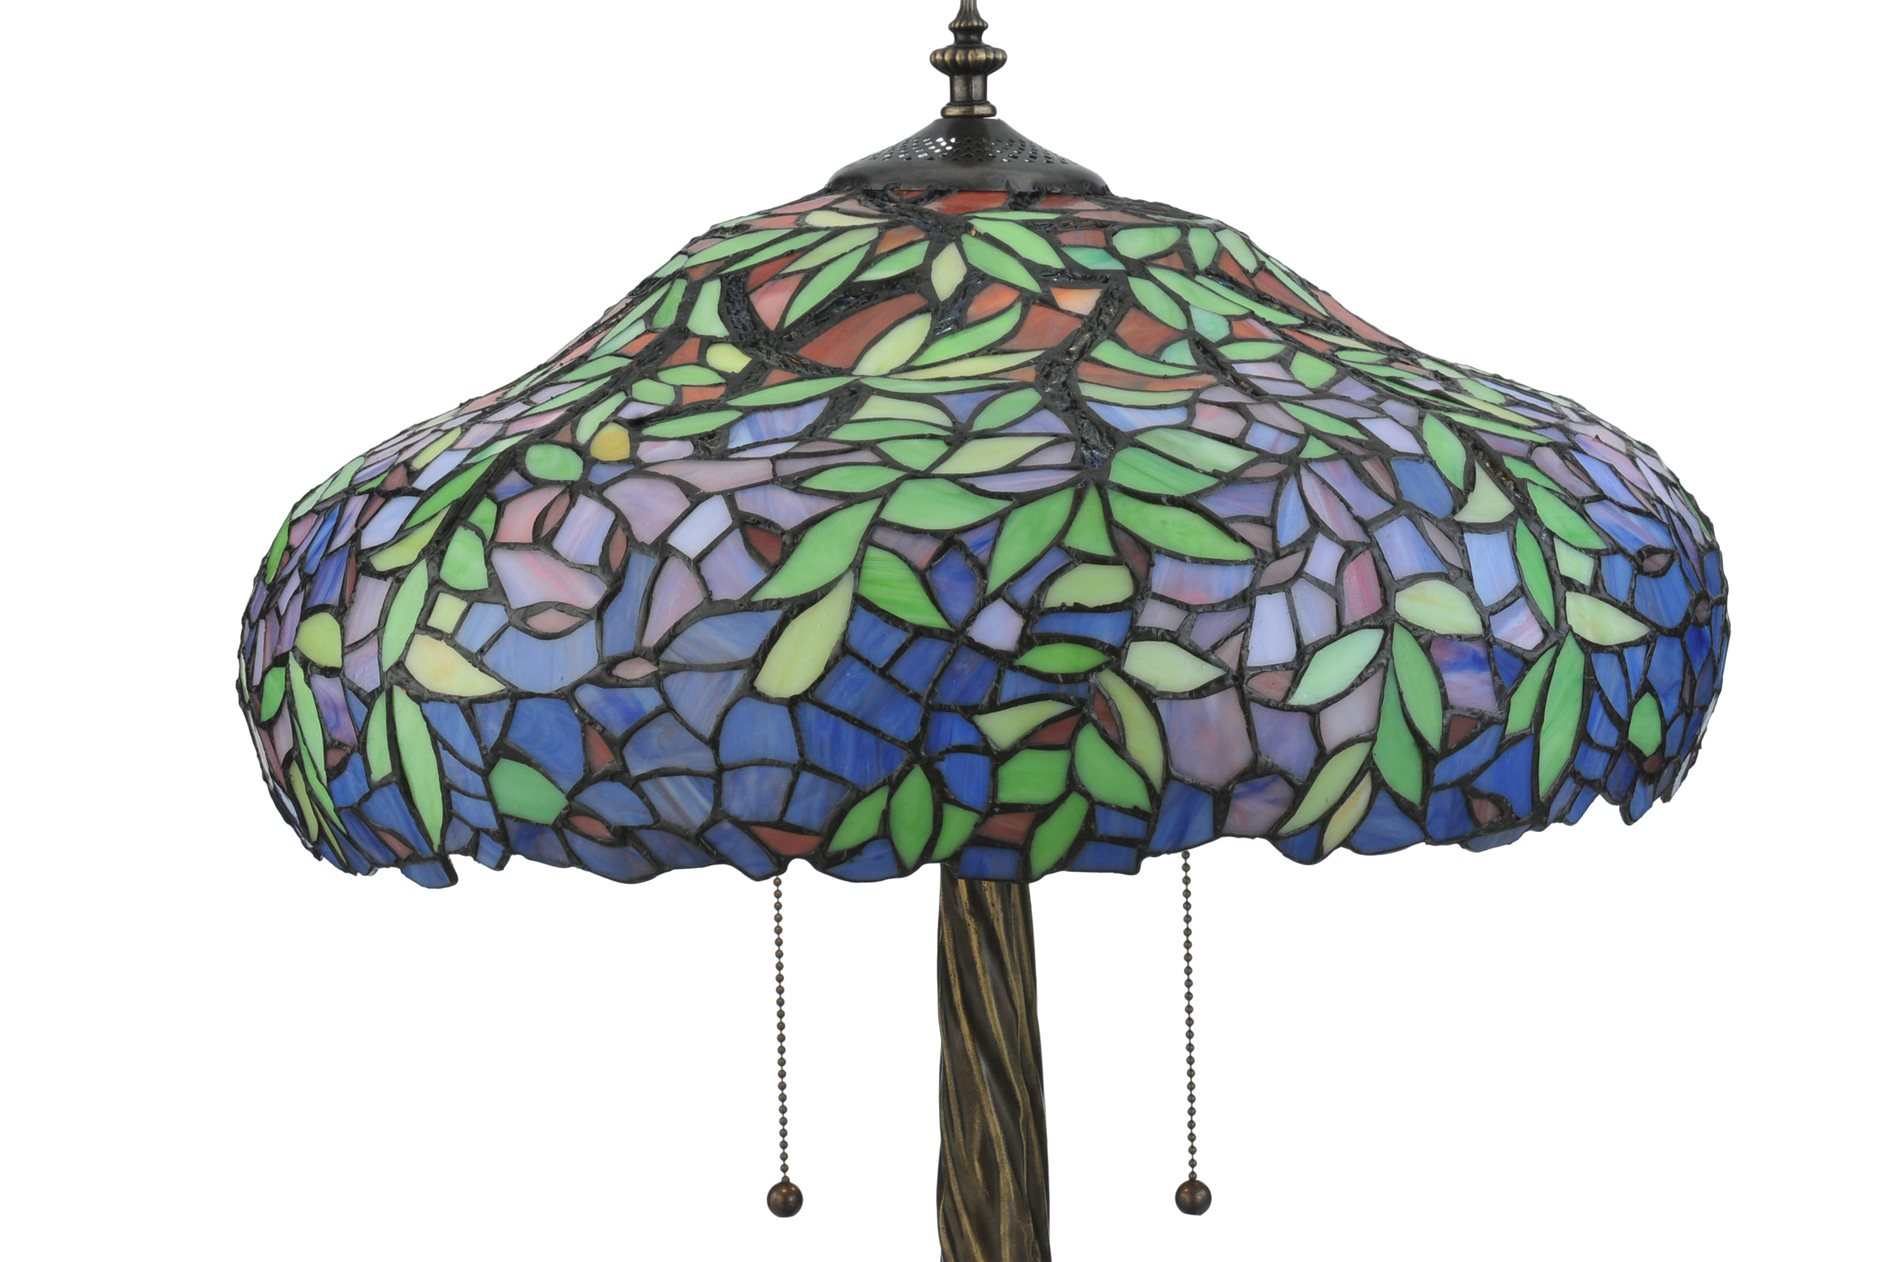 Tulip Ceiling Fan Meyda Tiffany 119674 Duffner And Kimberly Laburnum Table